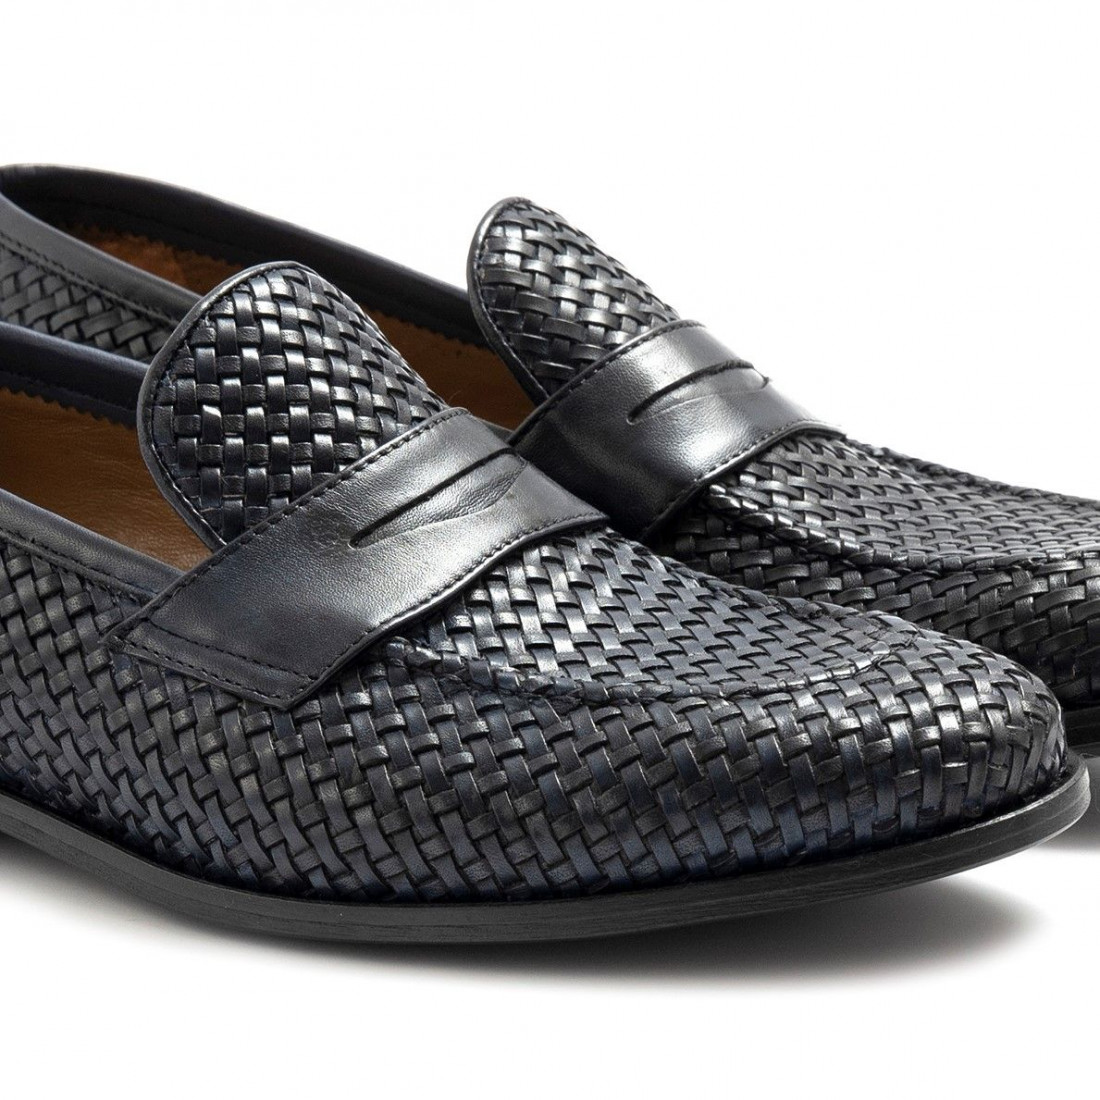 loafers man sangiorgio 1012vitello blu intreccio 6848